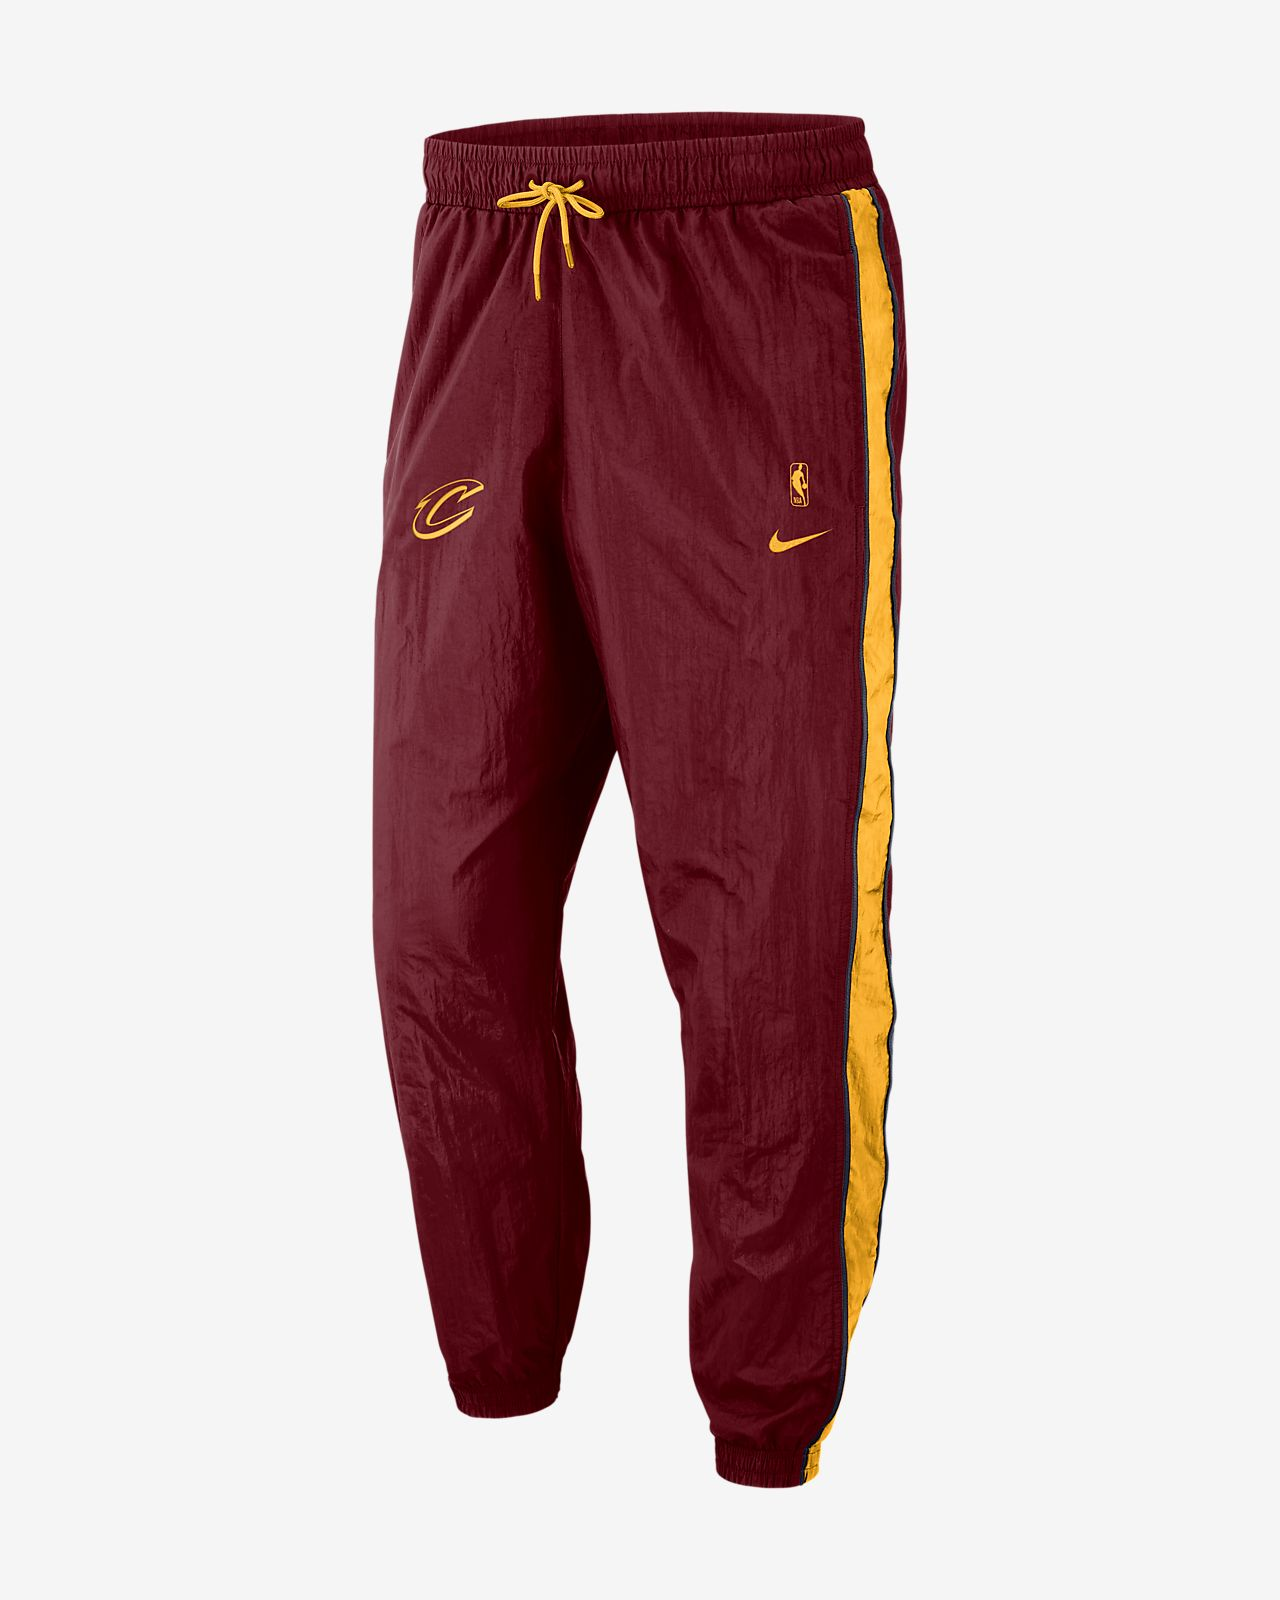 Cleveland Cavaliers Nike Courtside Men's NBA Tracksuit Pants